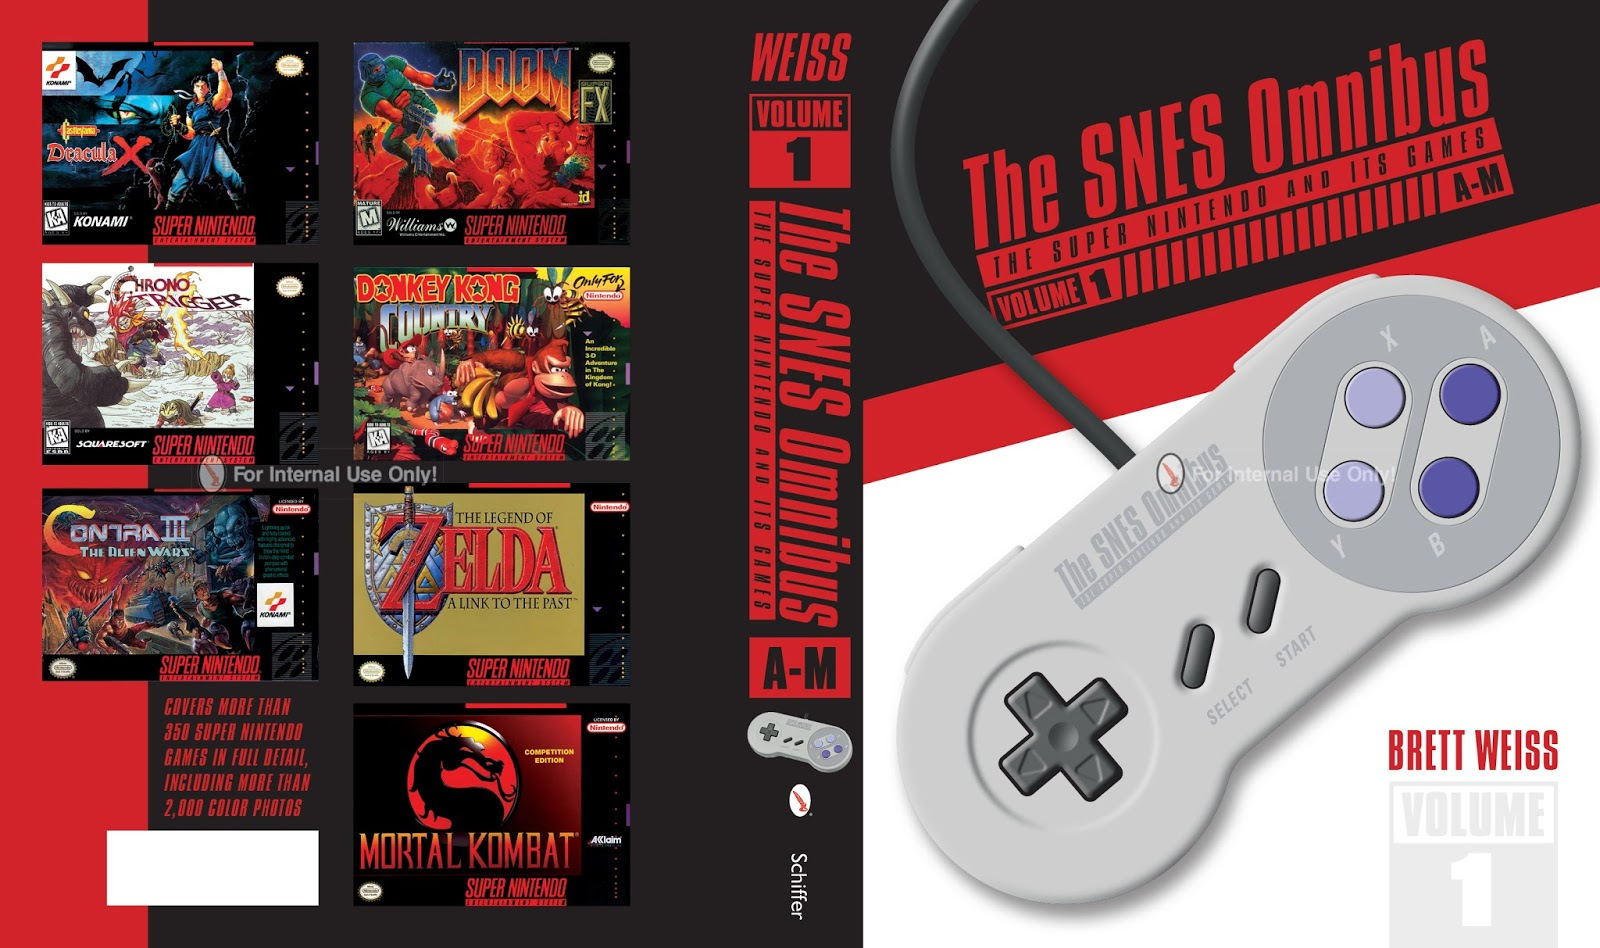 The SNES Omnibus (A-M) Now Available For Pre-Order - #UD 1